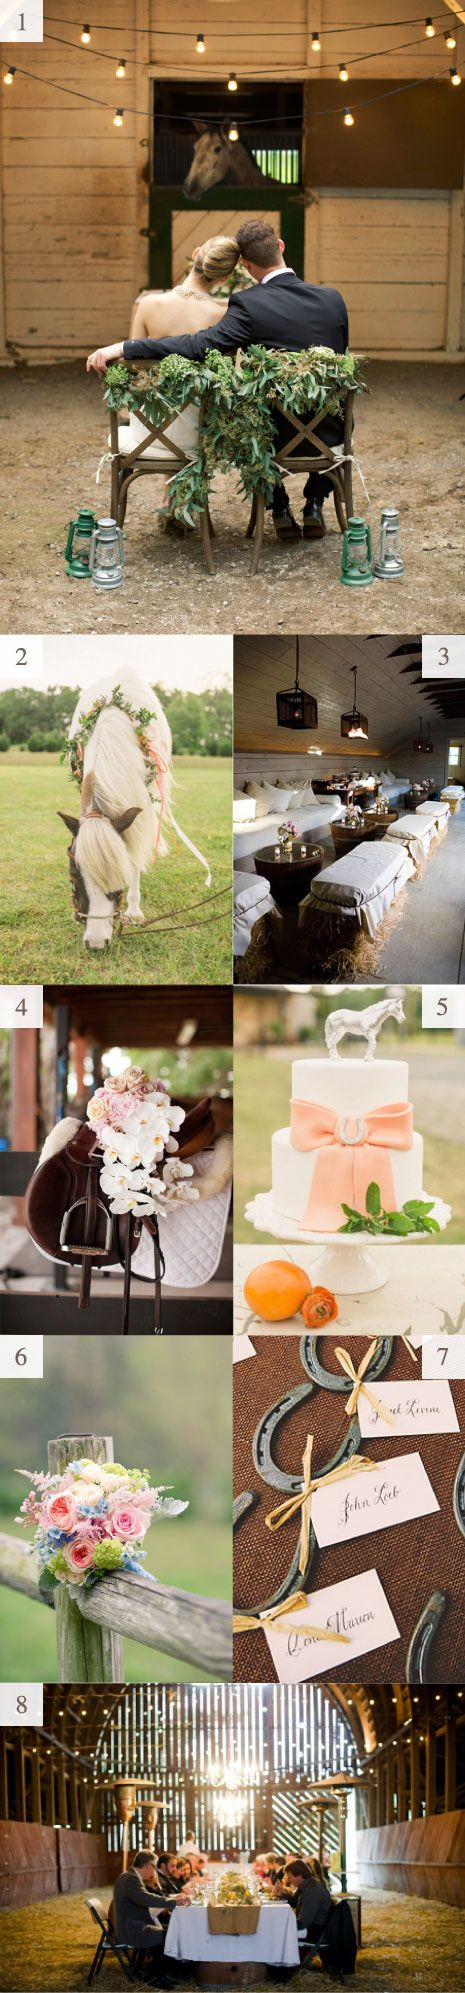 equestrian themed wedding - #ideas #horses Love this.